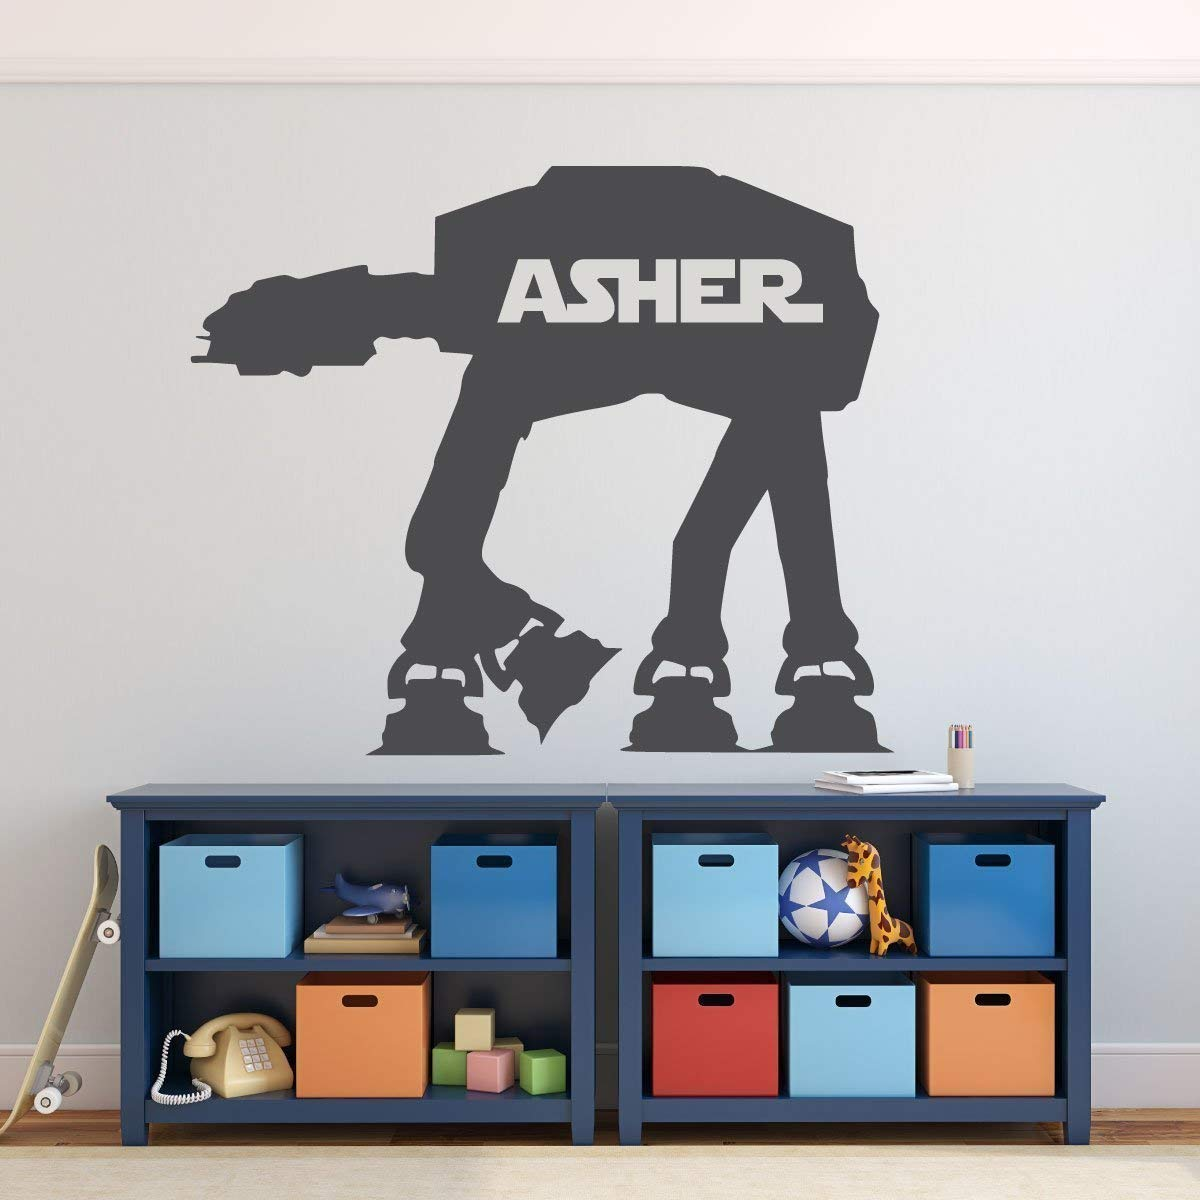 Cute asher Wall Sticker Pvc Stickers Art Paper For Kids Rooms Home Decor Decal Creative